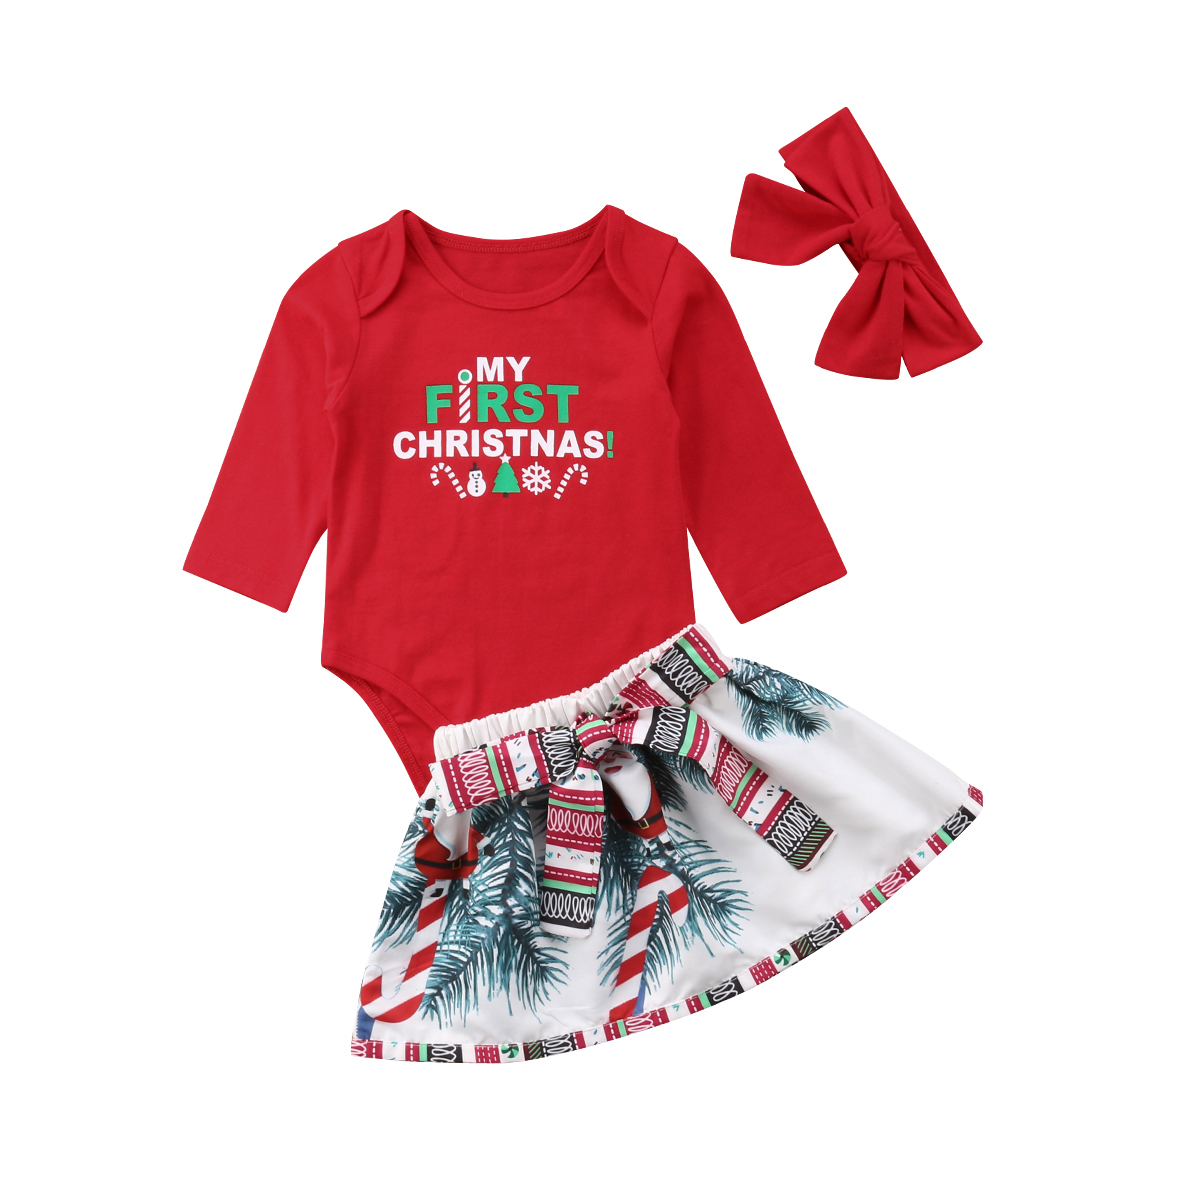 My First Christmas Newborn Baby Girl Long Sleeve Cotton Romper Tops+Snowman Print Bowknot Skirt Headband 3PCS Xmas Clothes Set newborn baby girl clothes set 3pcs kid party my first christmas cotton bodysuit sequin bowknot tulle tutu skirt headband outfit page 1